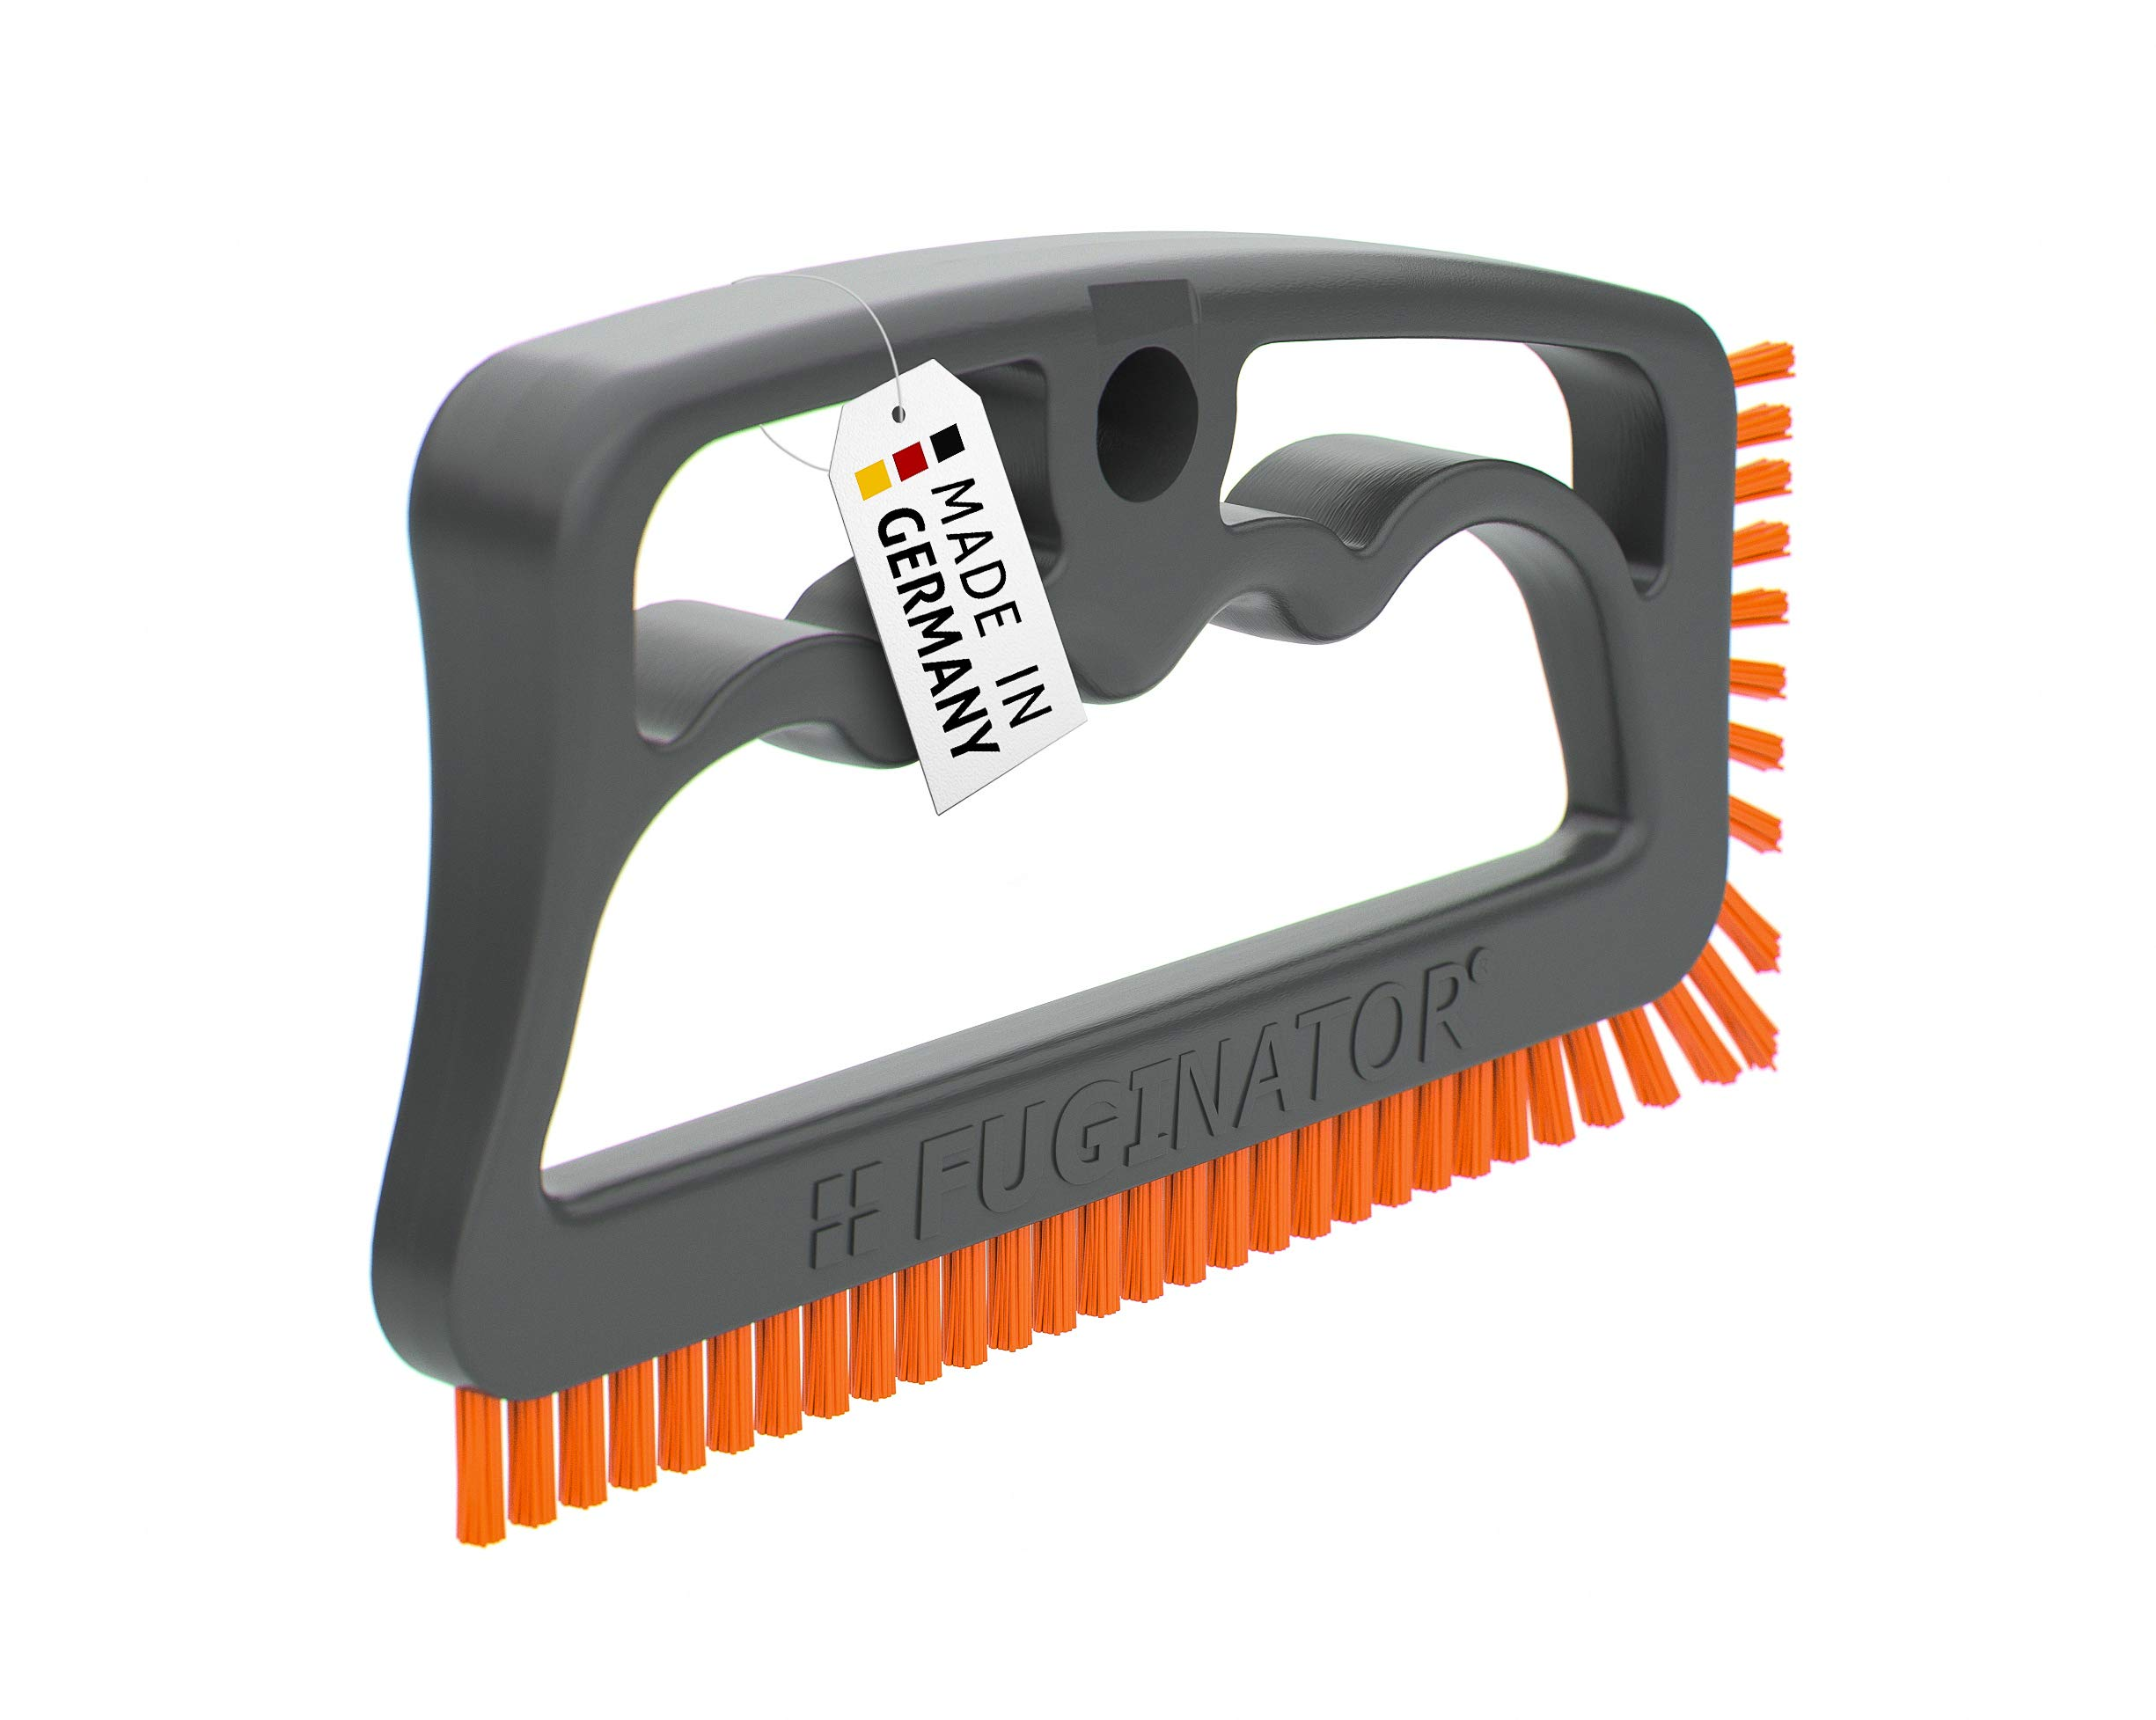 Fuginator Scrubbing Brush for Tile and Grout: Stiff Nylon Bristle Scrub Made Out of 100% Recycled Materials for Floor Joints and Tile Seams - Cleaning Scrubber and Supplies for Bathroom and Kitchen